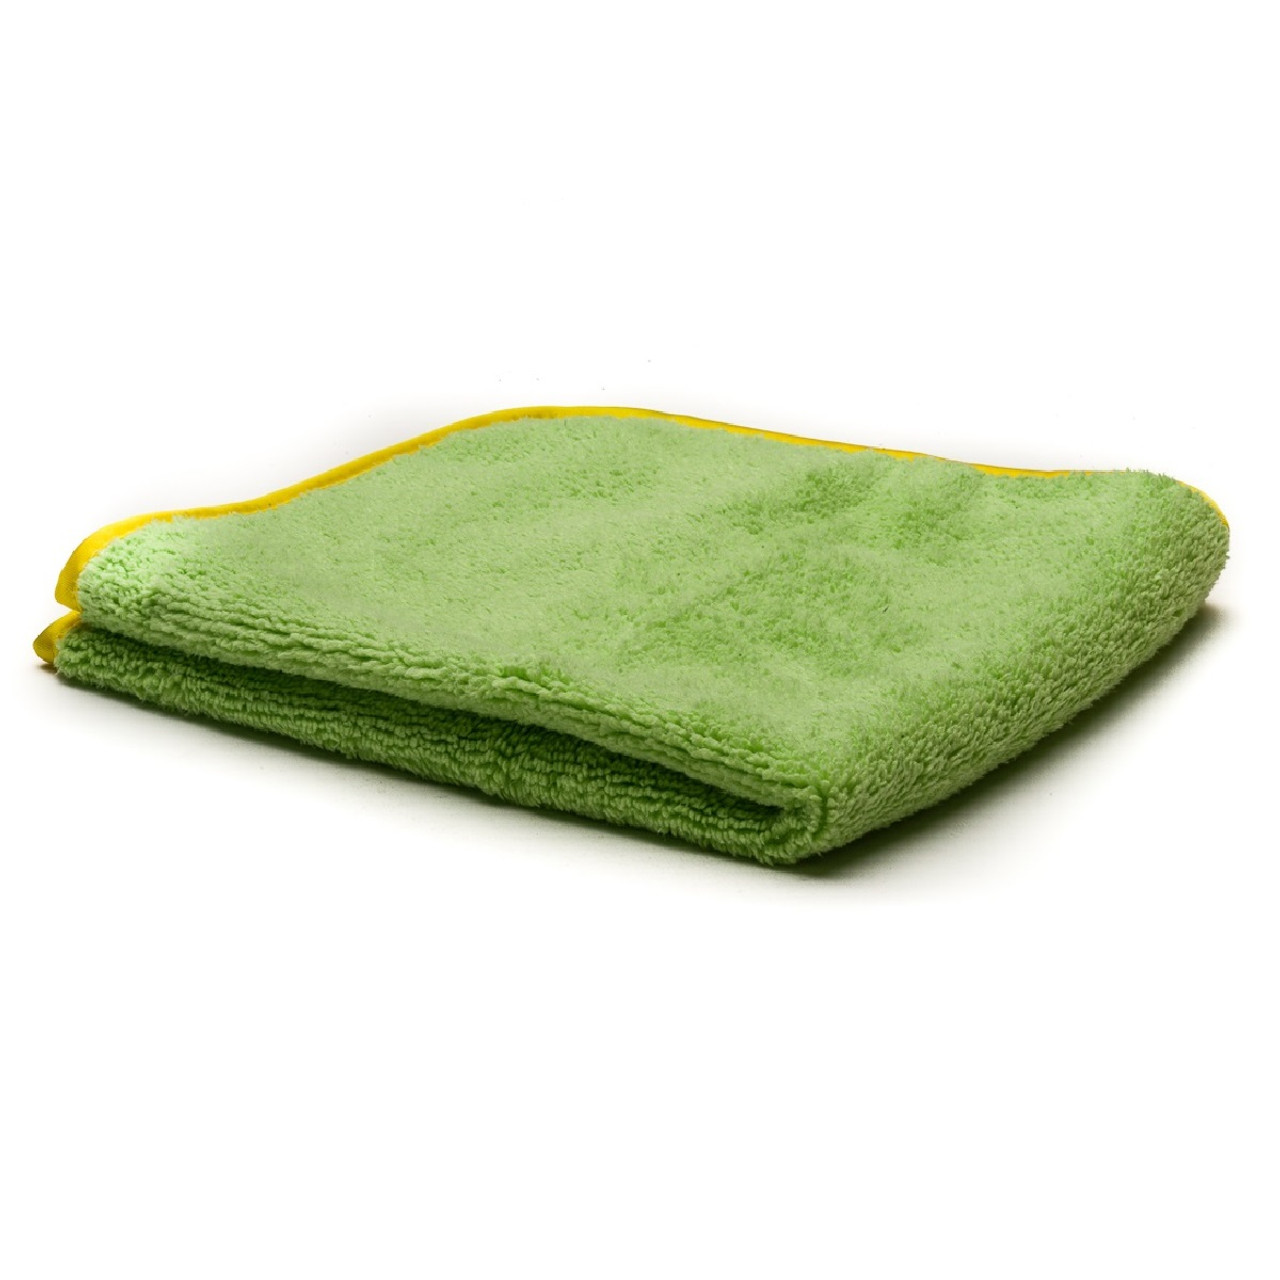 "Poorboy's World DMT (Deluxe Mega Towel) - Green - 16""x16"""